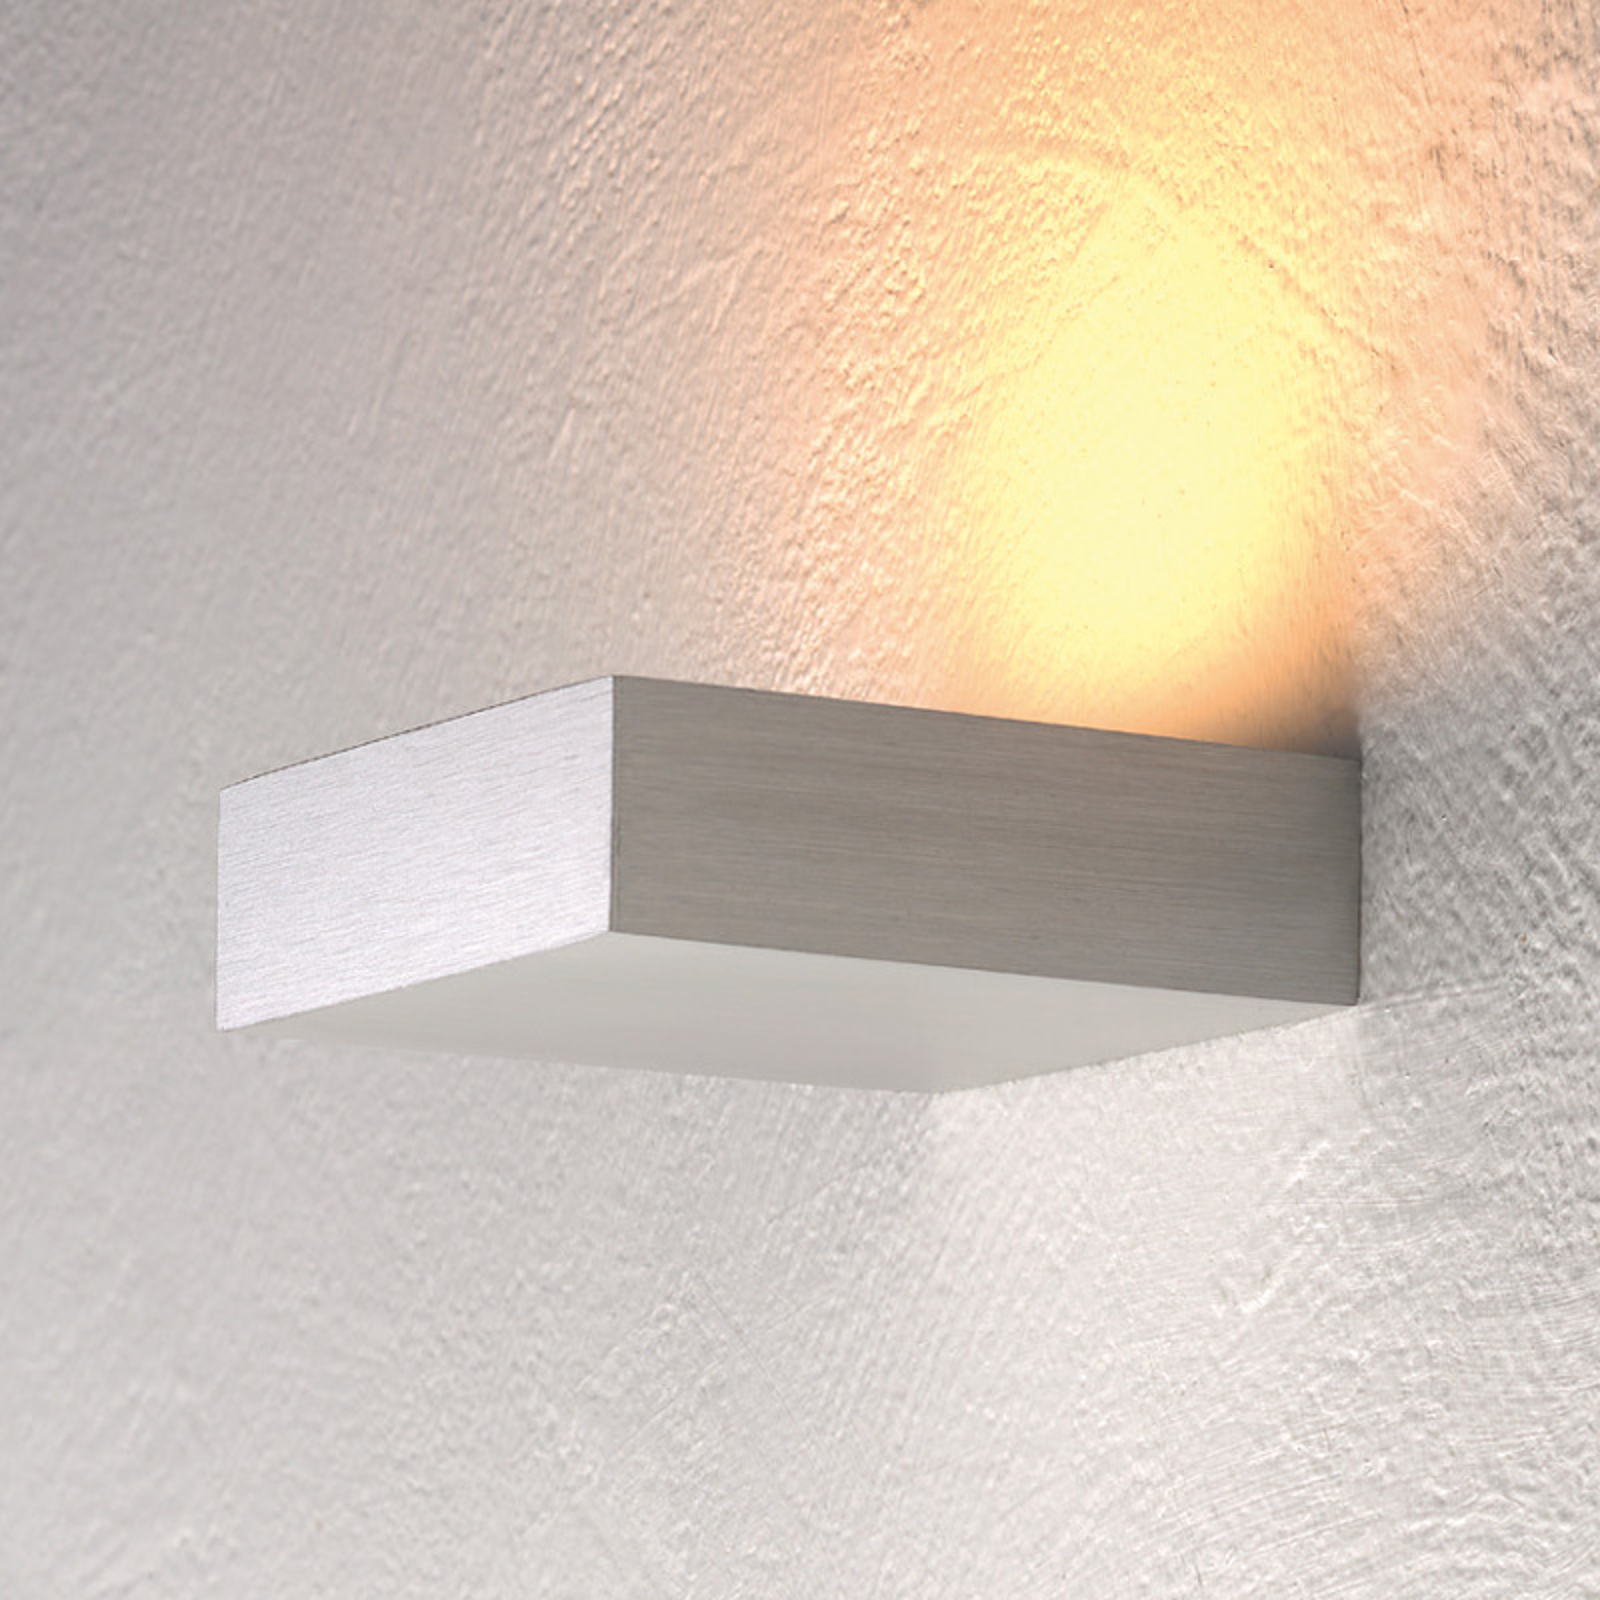 Discreet LED wall uplighter Cubus_1556049_1